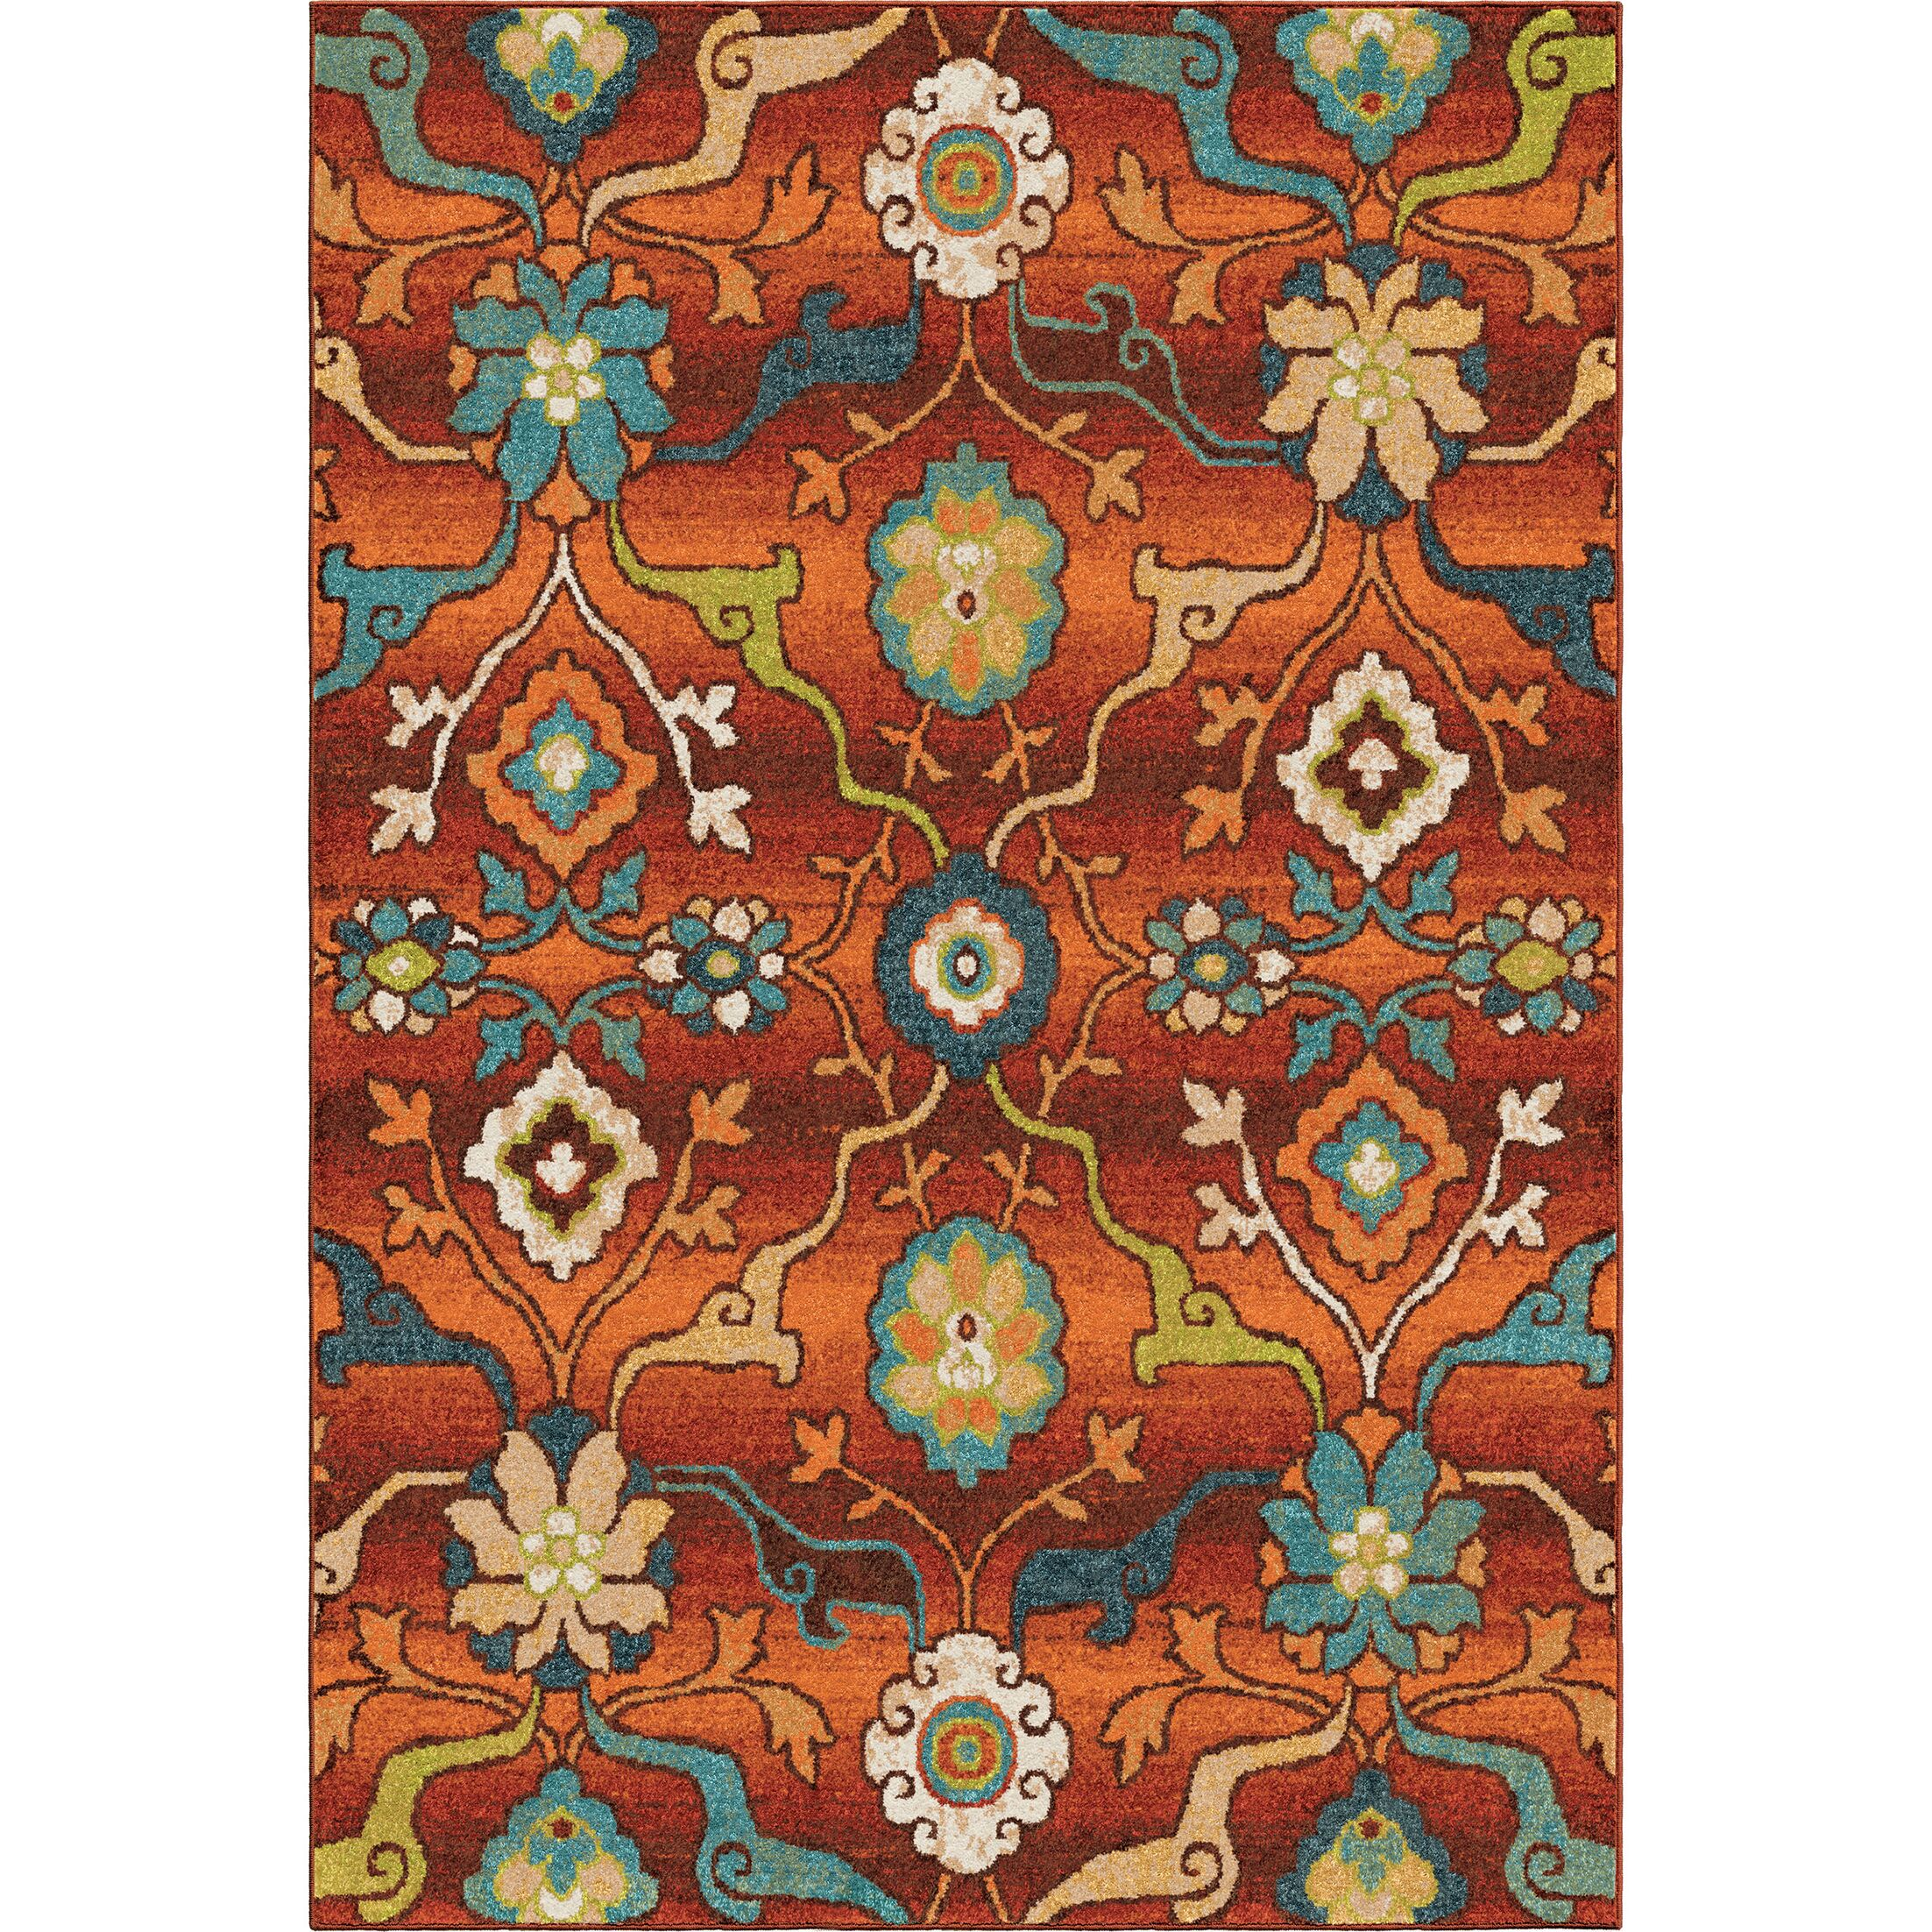 Ansonville Orange Area Rug Rug Size: 5'3